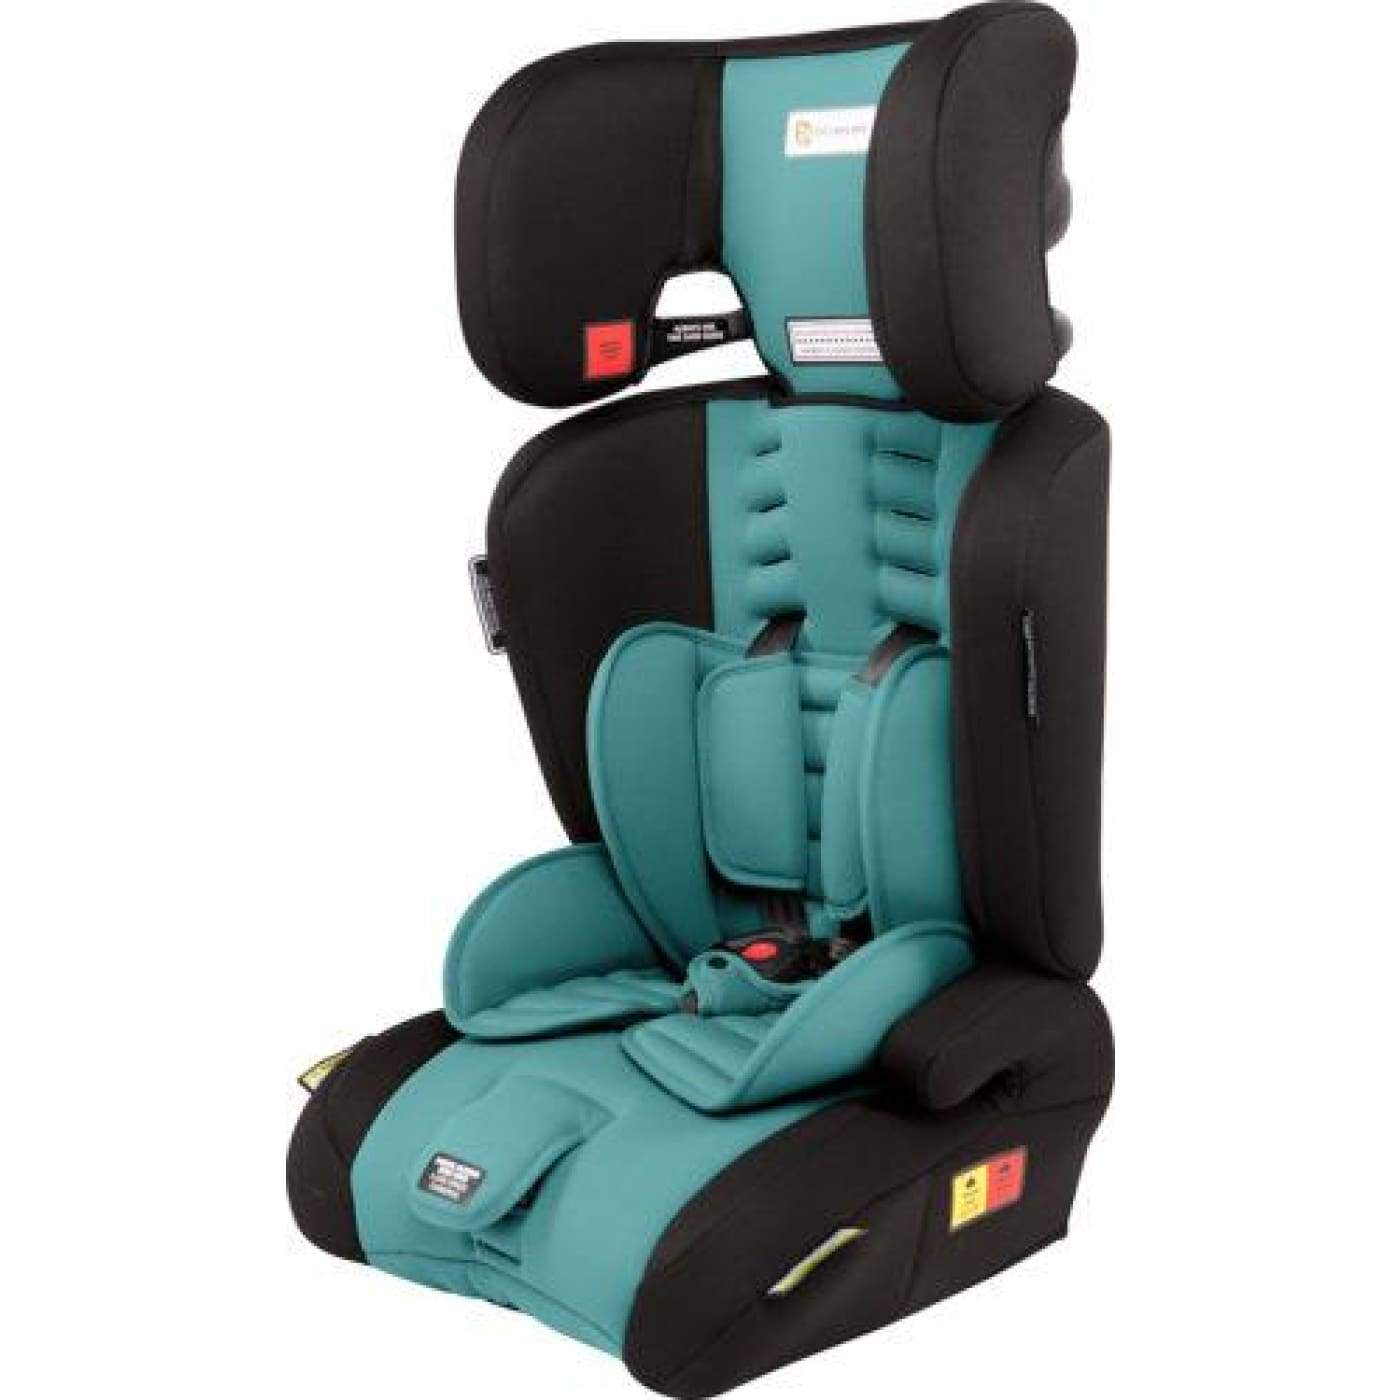 InfaSecure Visage Astra Convertible Booster 6M-8YR - Aqua - CAR SEATS - CONV BOOSTERS (6M-8YR)